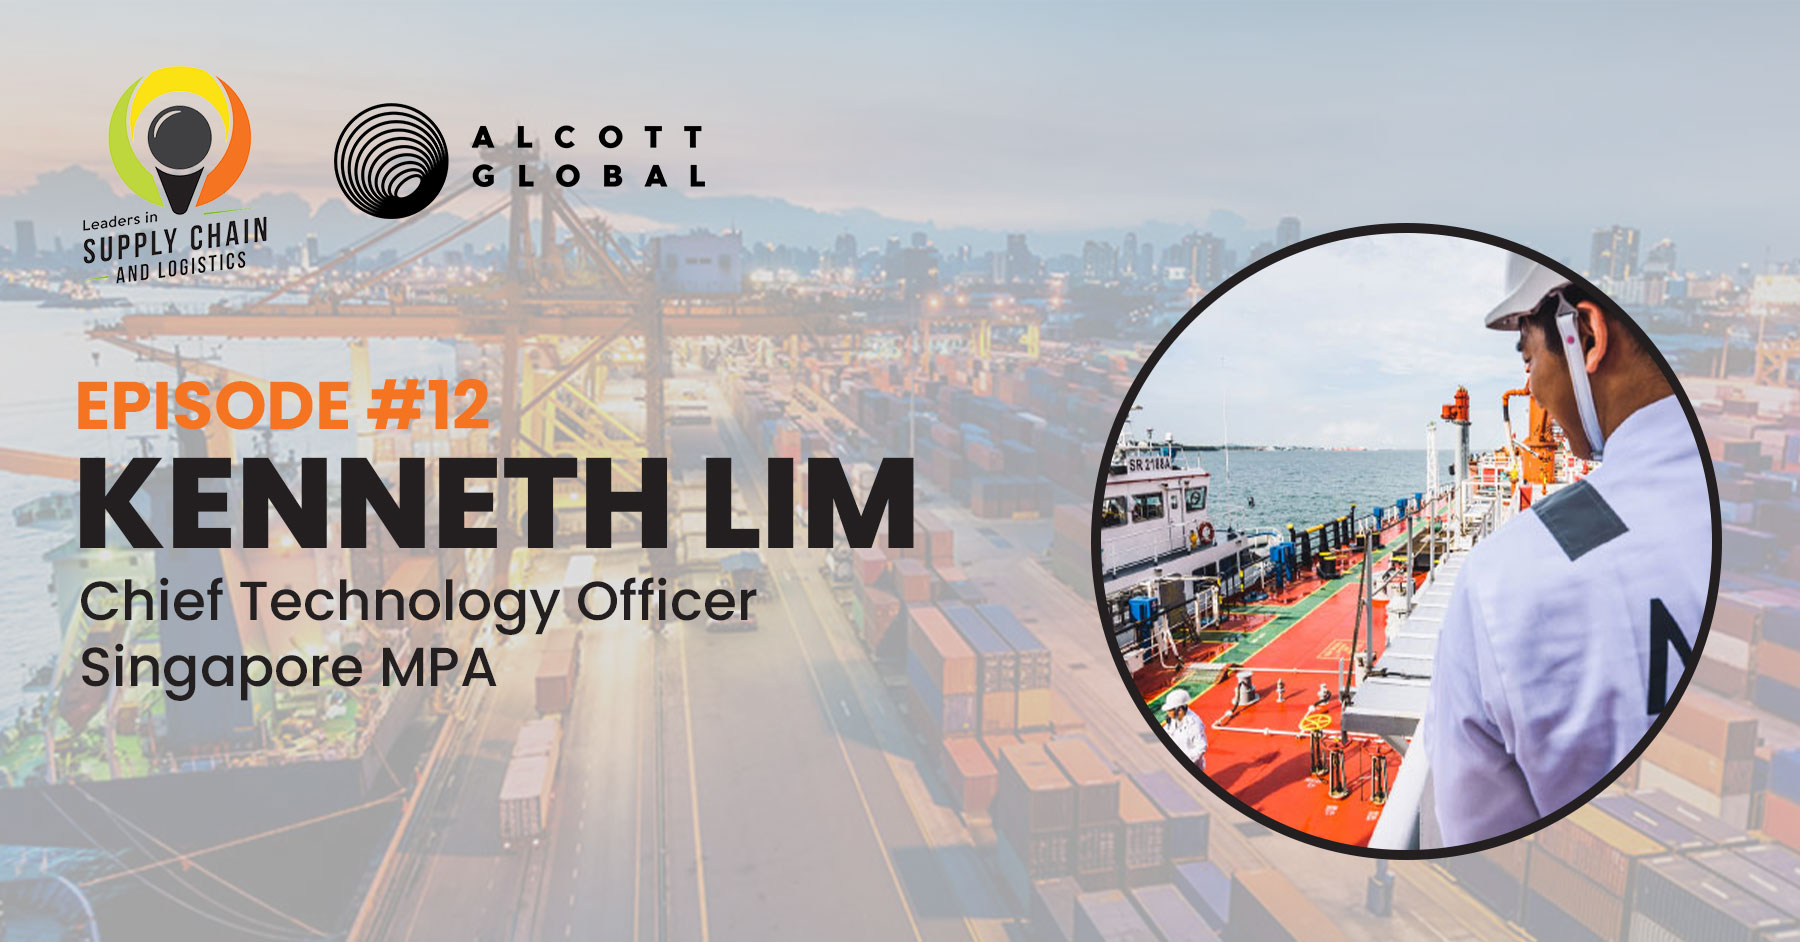 #12: Kenneth Lim CTO at Singapore MPA Featured Image